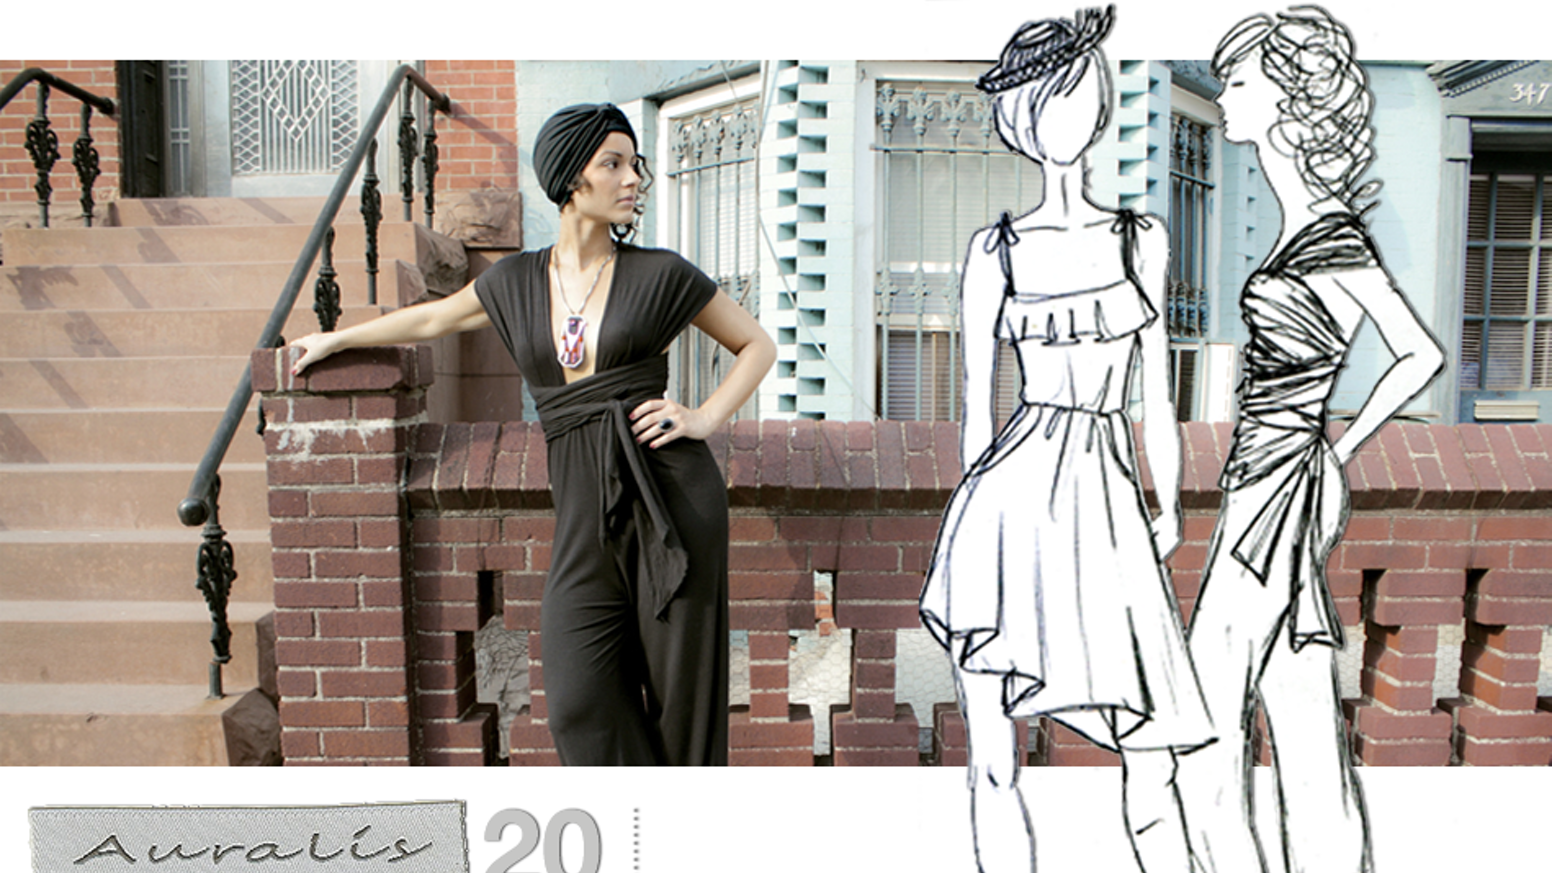 Be part of Auralis S2011! Bring together the sustainable fashion design industries in Puerto Rico and New York.